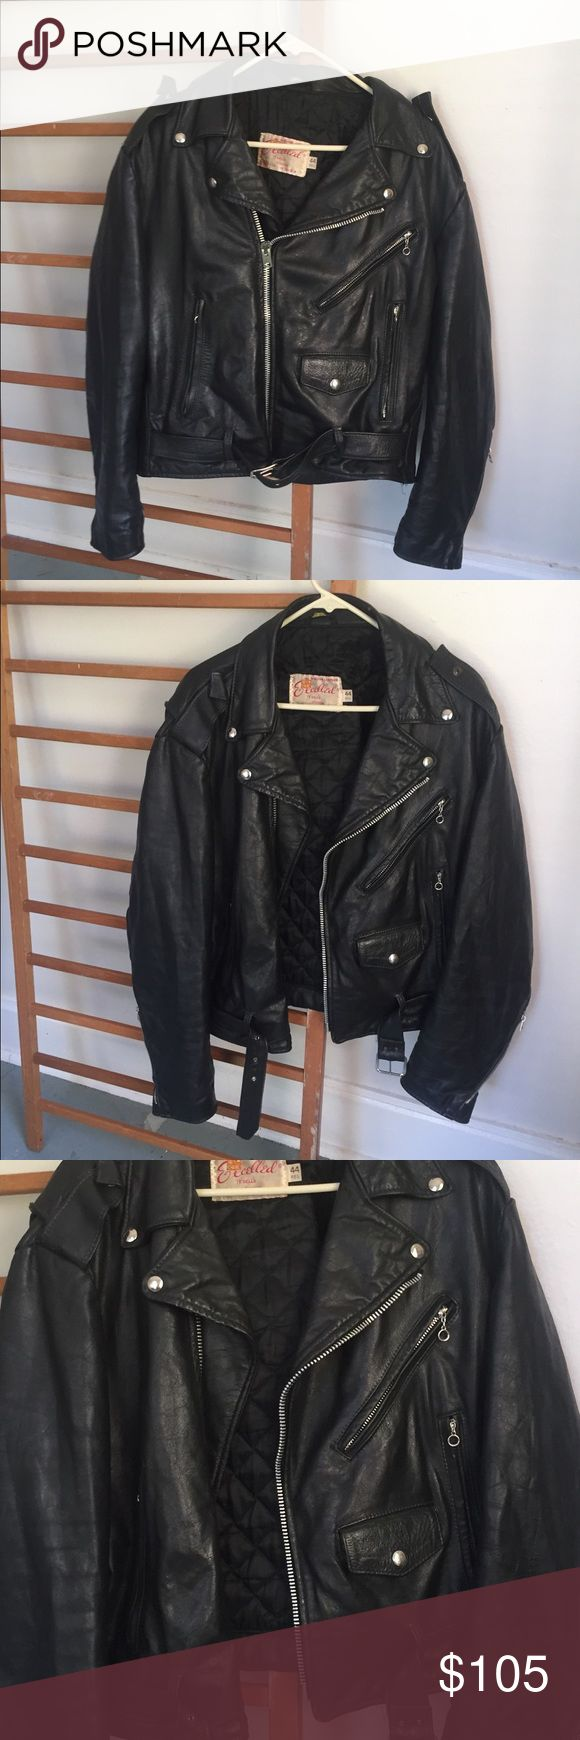 ESSENTIAL VINTAGE LEATHER MOTORCYCLE JACKET This is a GRAIL. This handsome jacket features fine vintage leather that is almost impossible to recreate now a days. Is it quilted and lined so it is a great winter item and an amazing riding jacket. Some vintage jackets and leather jackets are stuck in one era but this piece is TIMELESS. This could be a hand me down to a son or even grandchild as it is such high quality and made in the USA. AMERICAN VINTAGE Jackets & Coats Performance Jackets